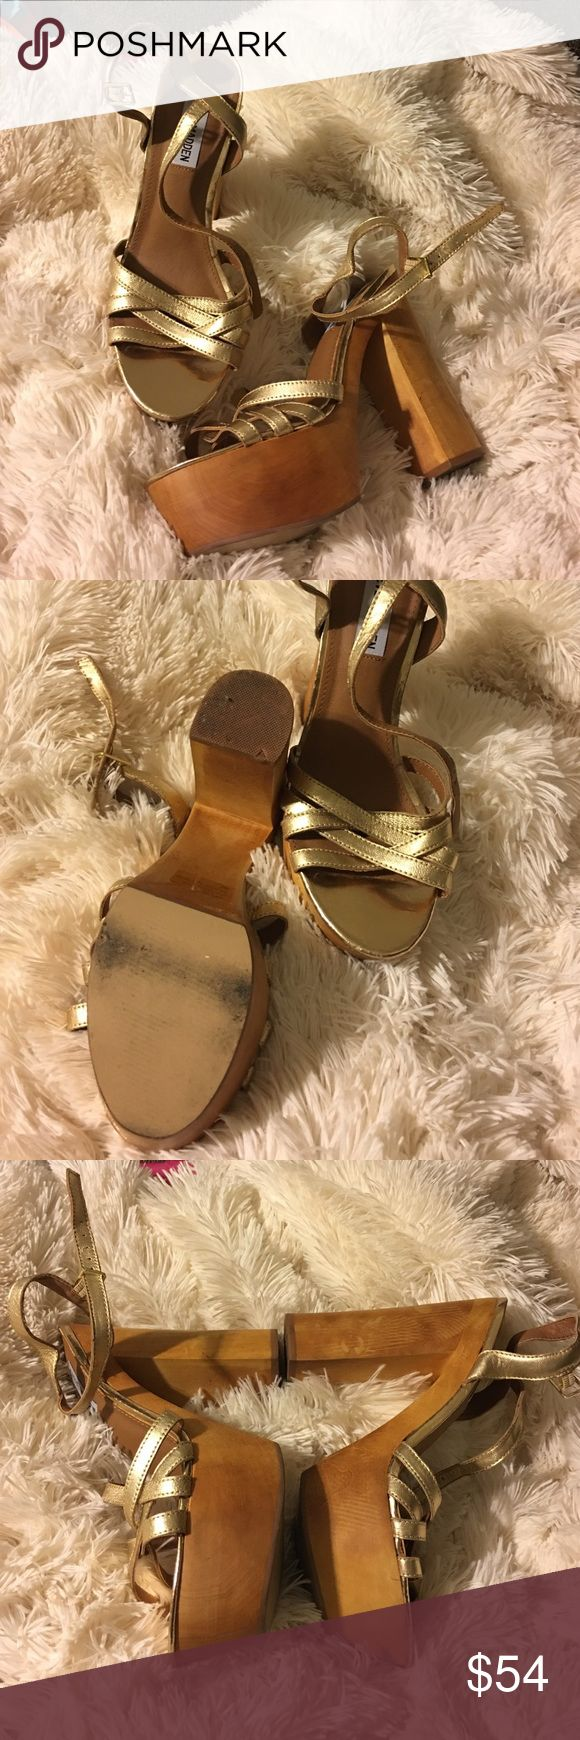 Steve Madden golden platform sandal Gorgeous platform sandal / worn a couple of times / smoke free/ pet free home/ please ask any and all questions prior to purchasing. Thank you for looking Shoes Platforms